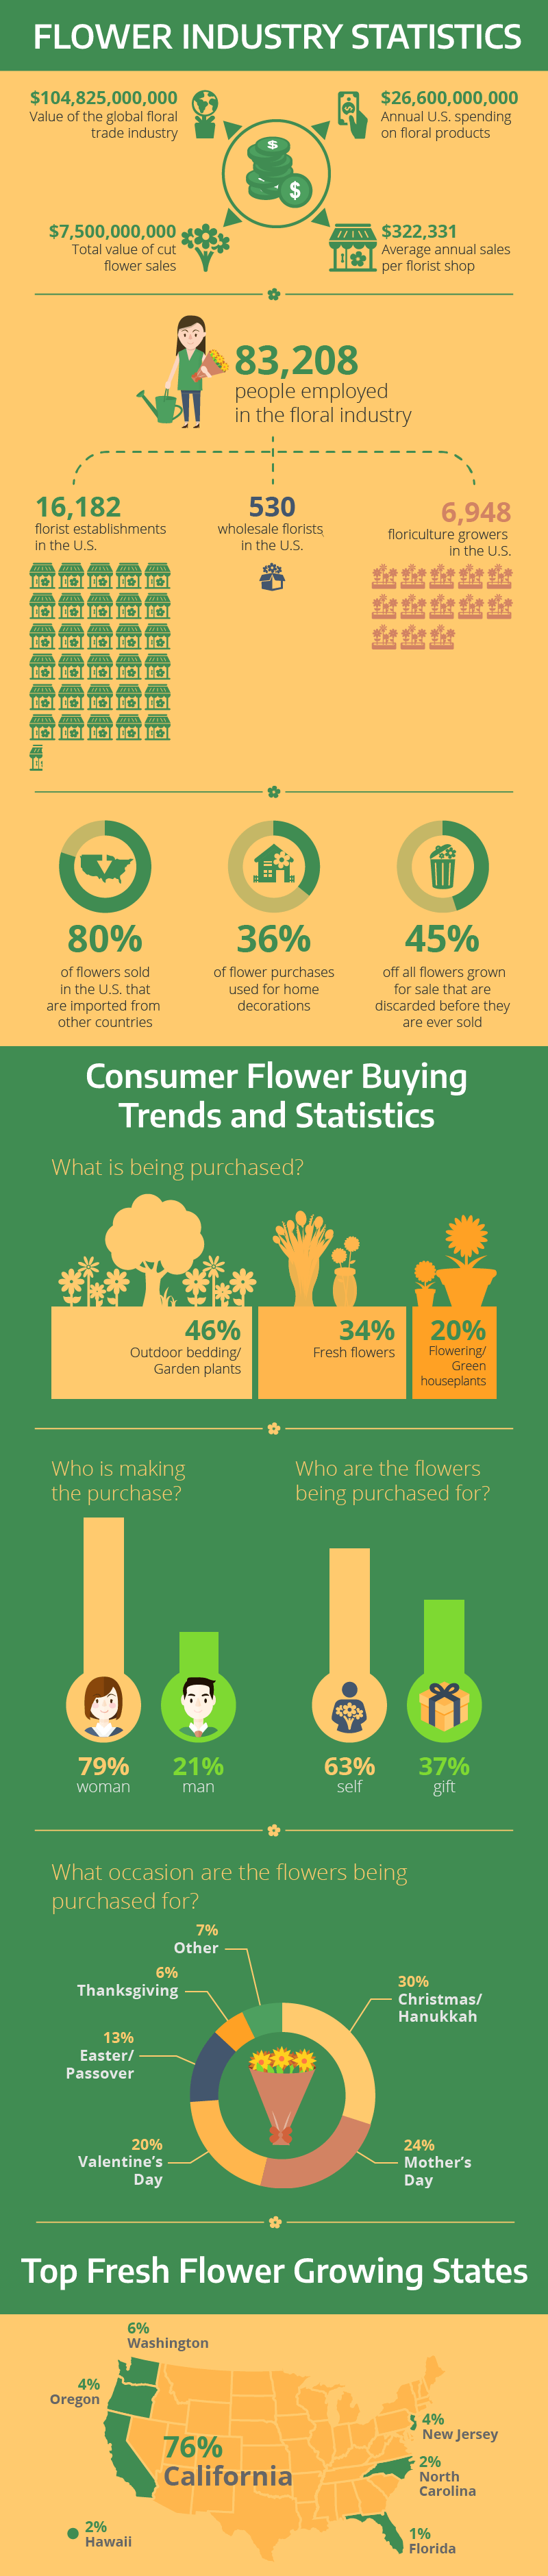 Flower Industry Statistics Infographic